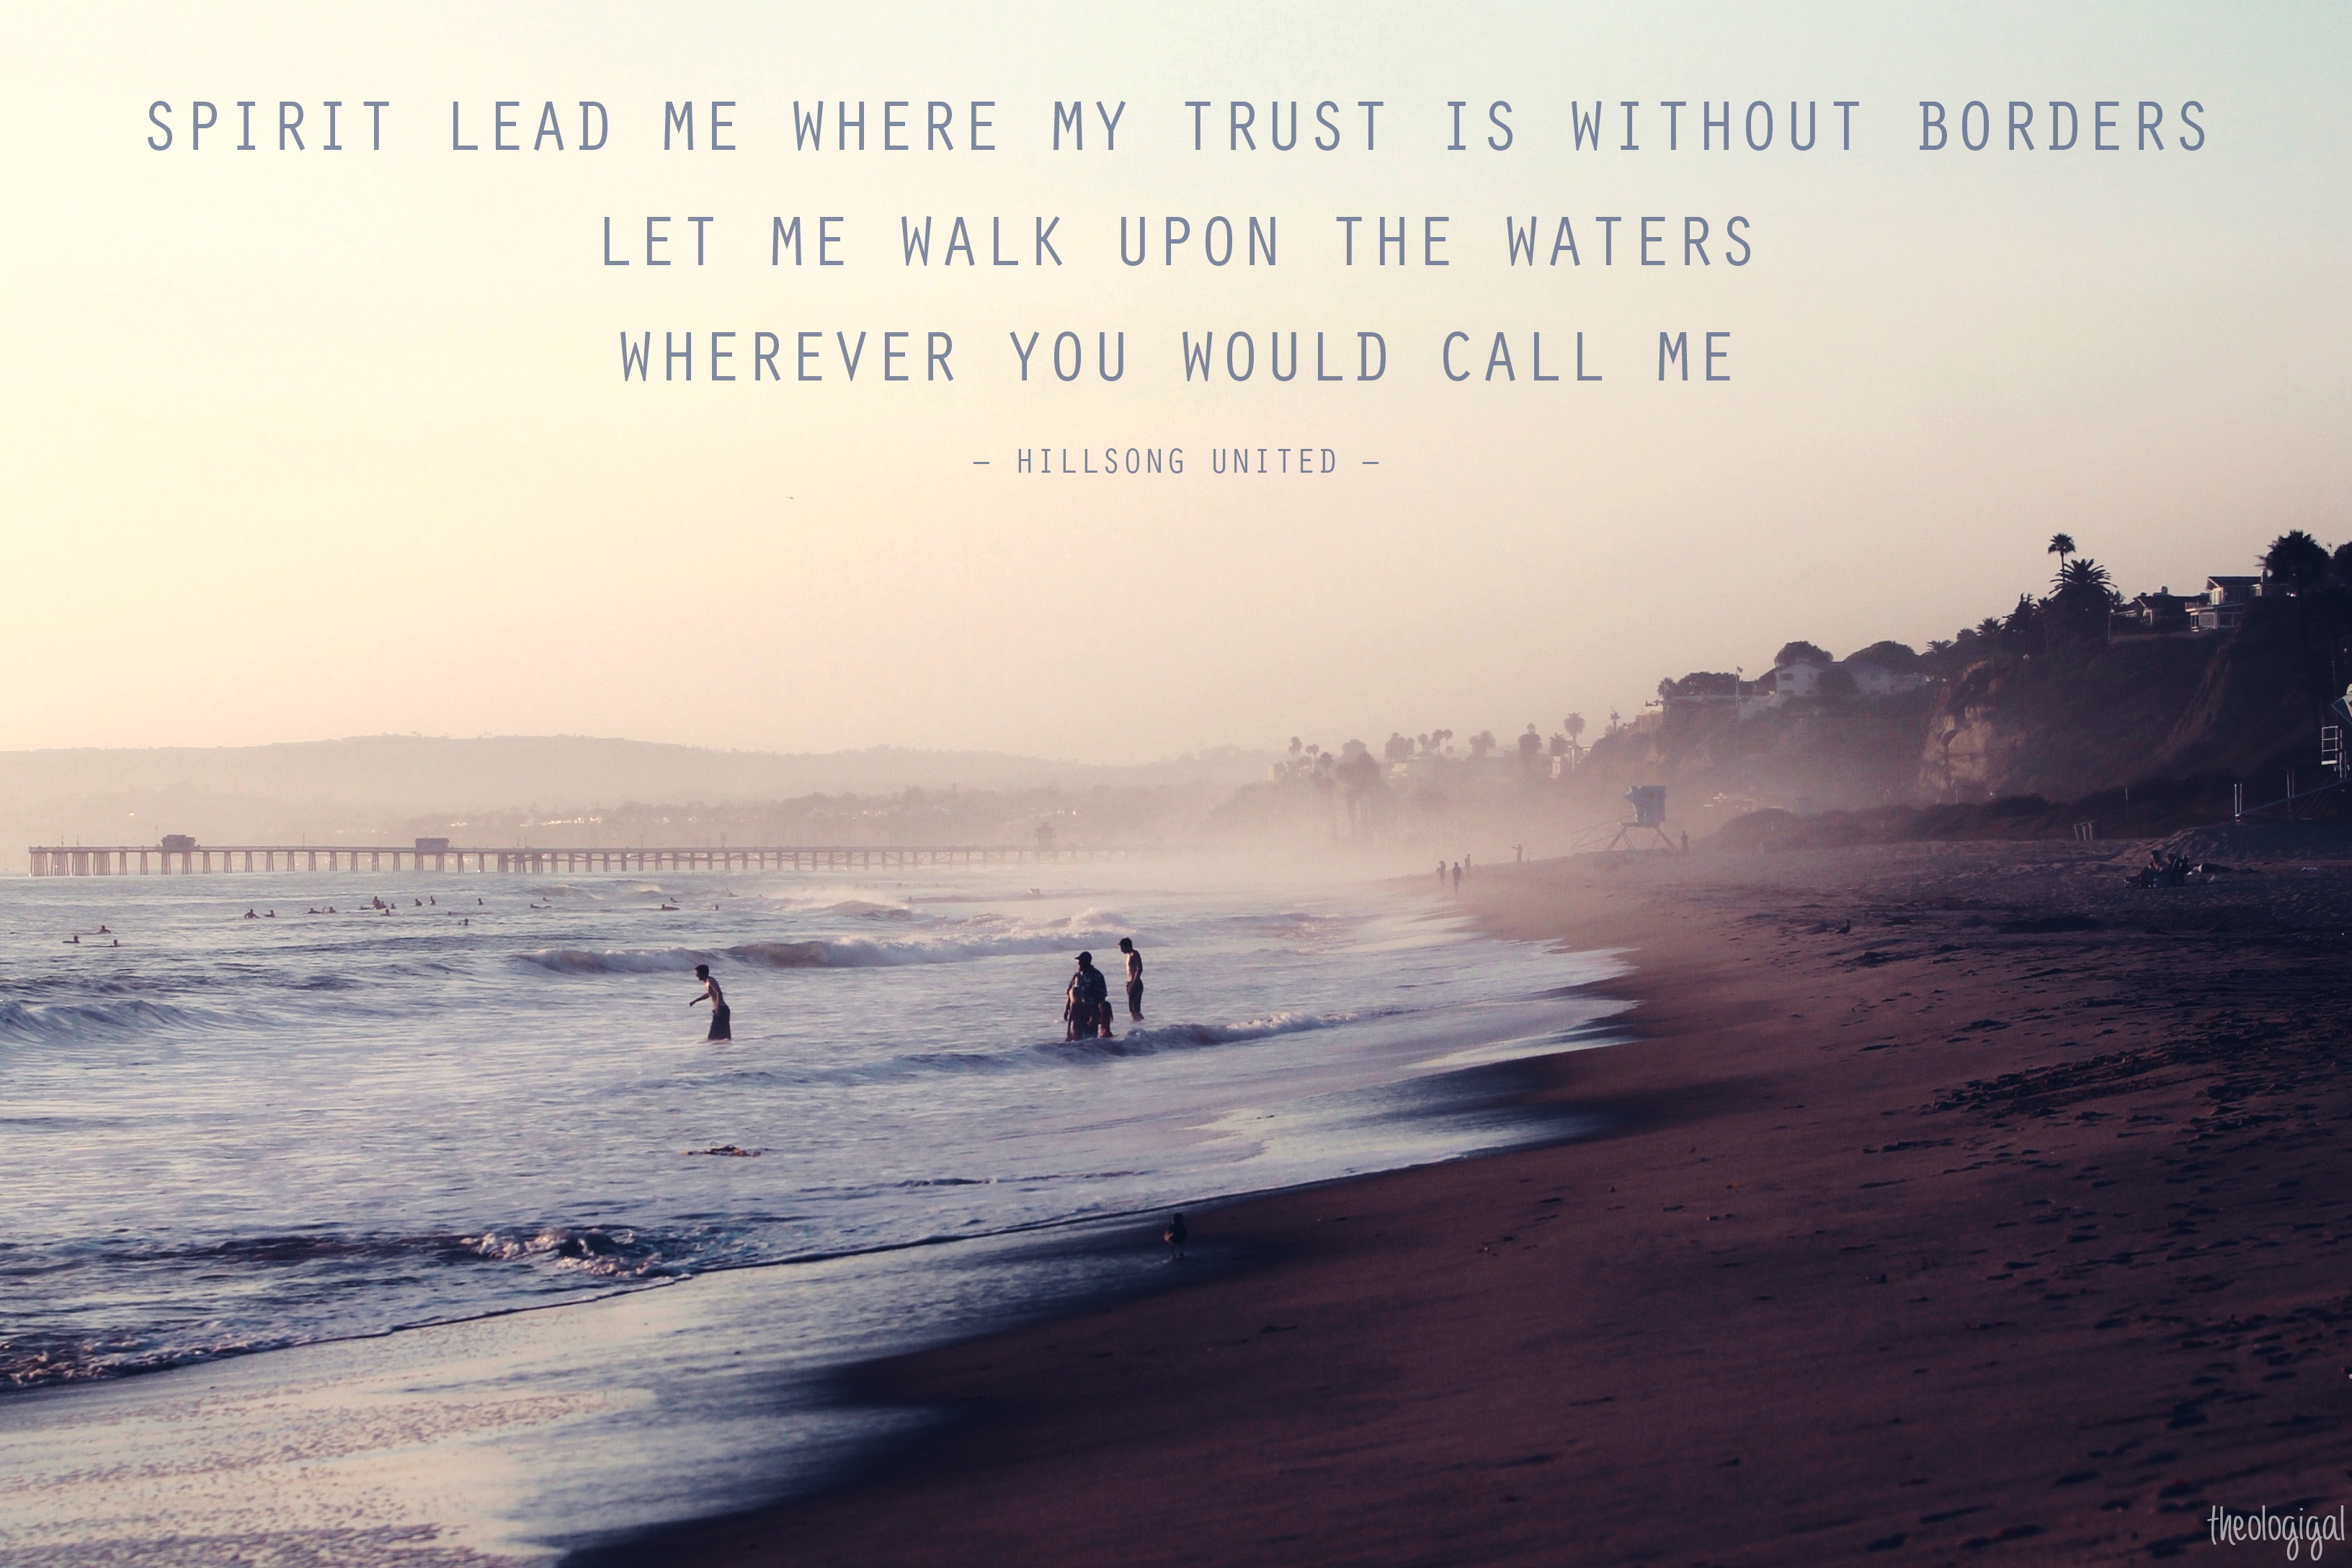 Spirit lead me where my trust is without borders Hillsong Unites 3264x2176